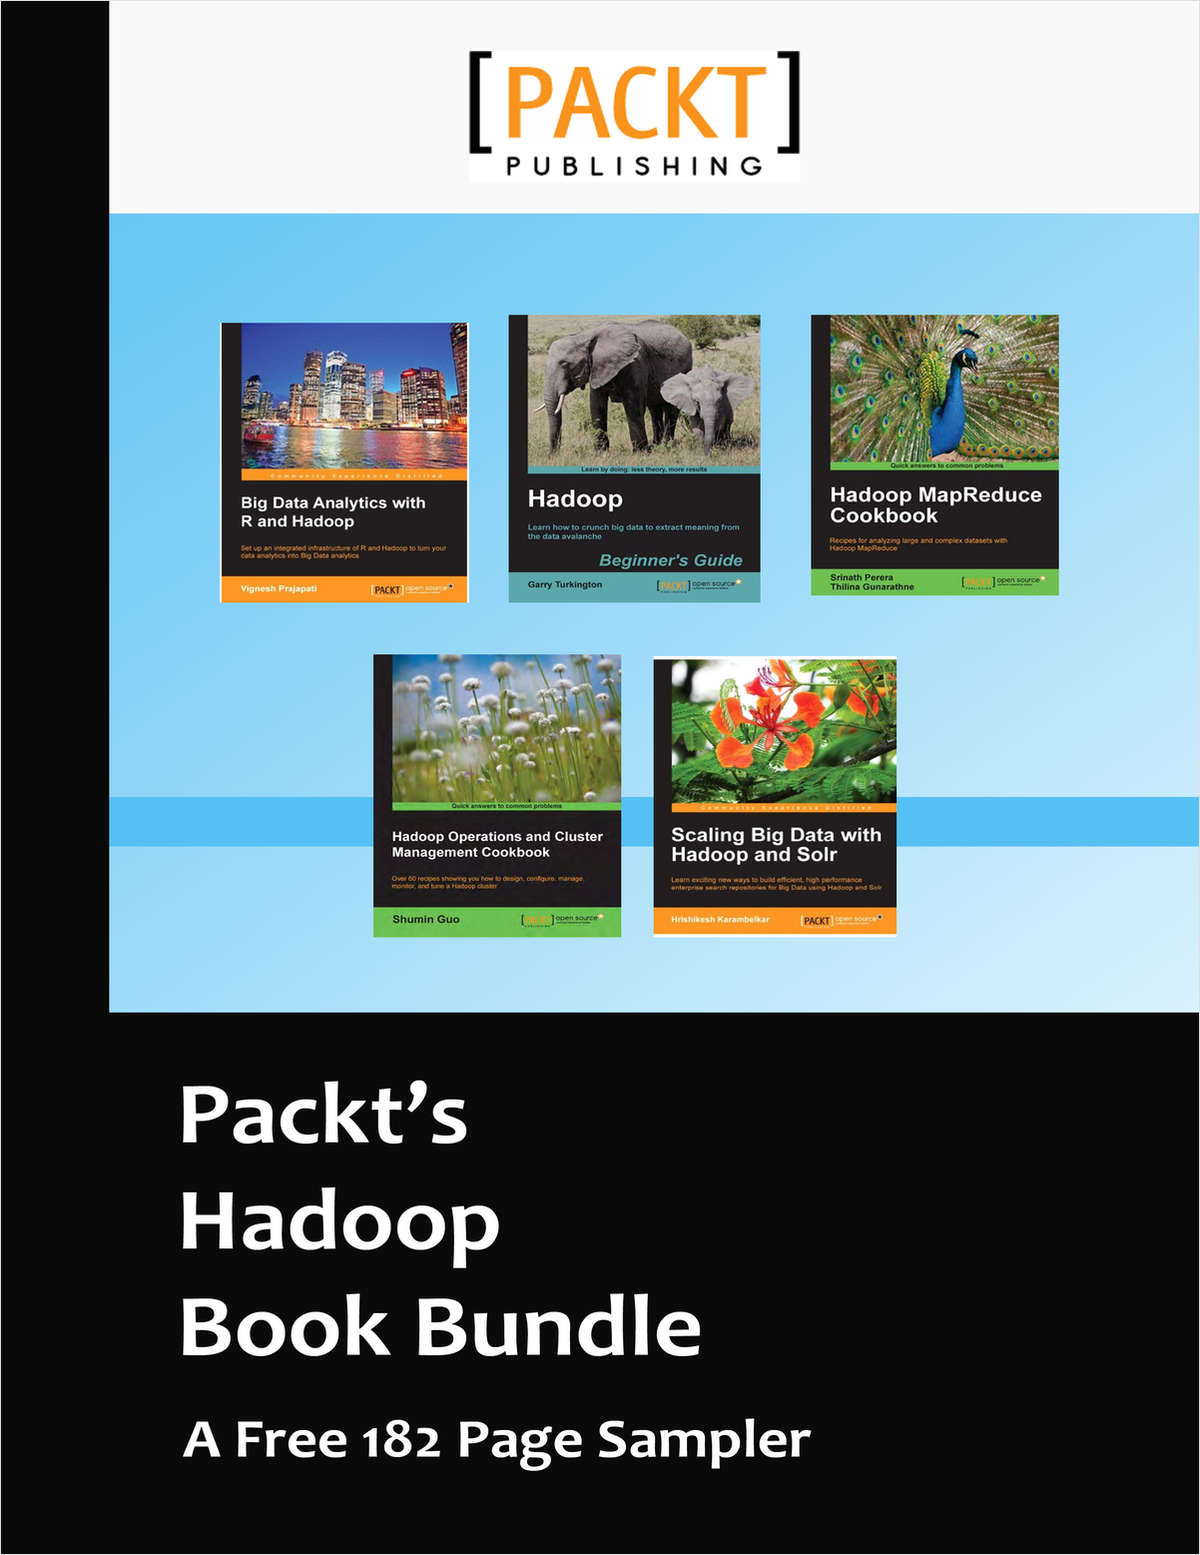 Packt's Hadoop Book Bundle -- A Free 182 Page Sampler